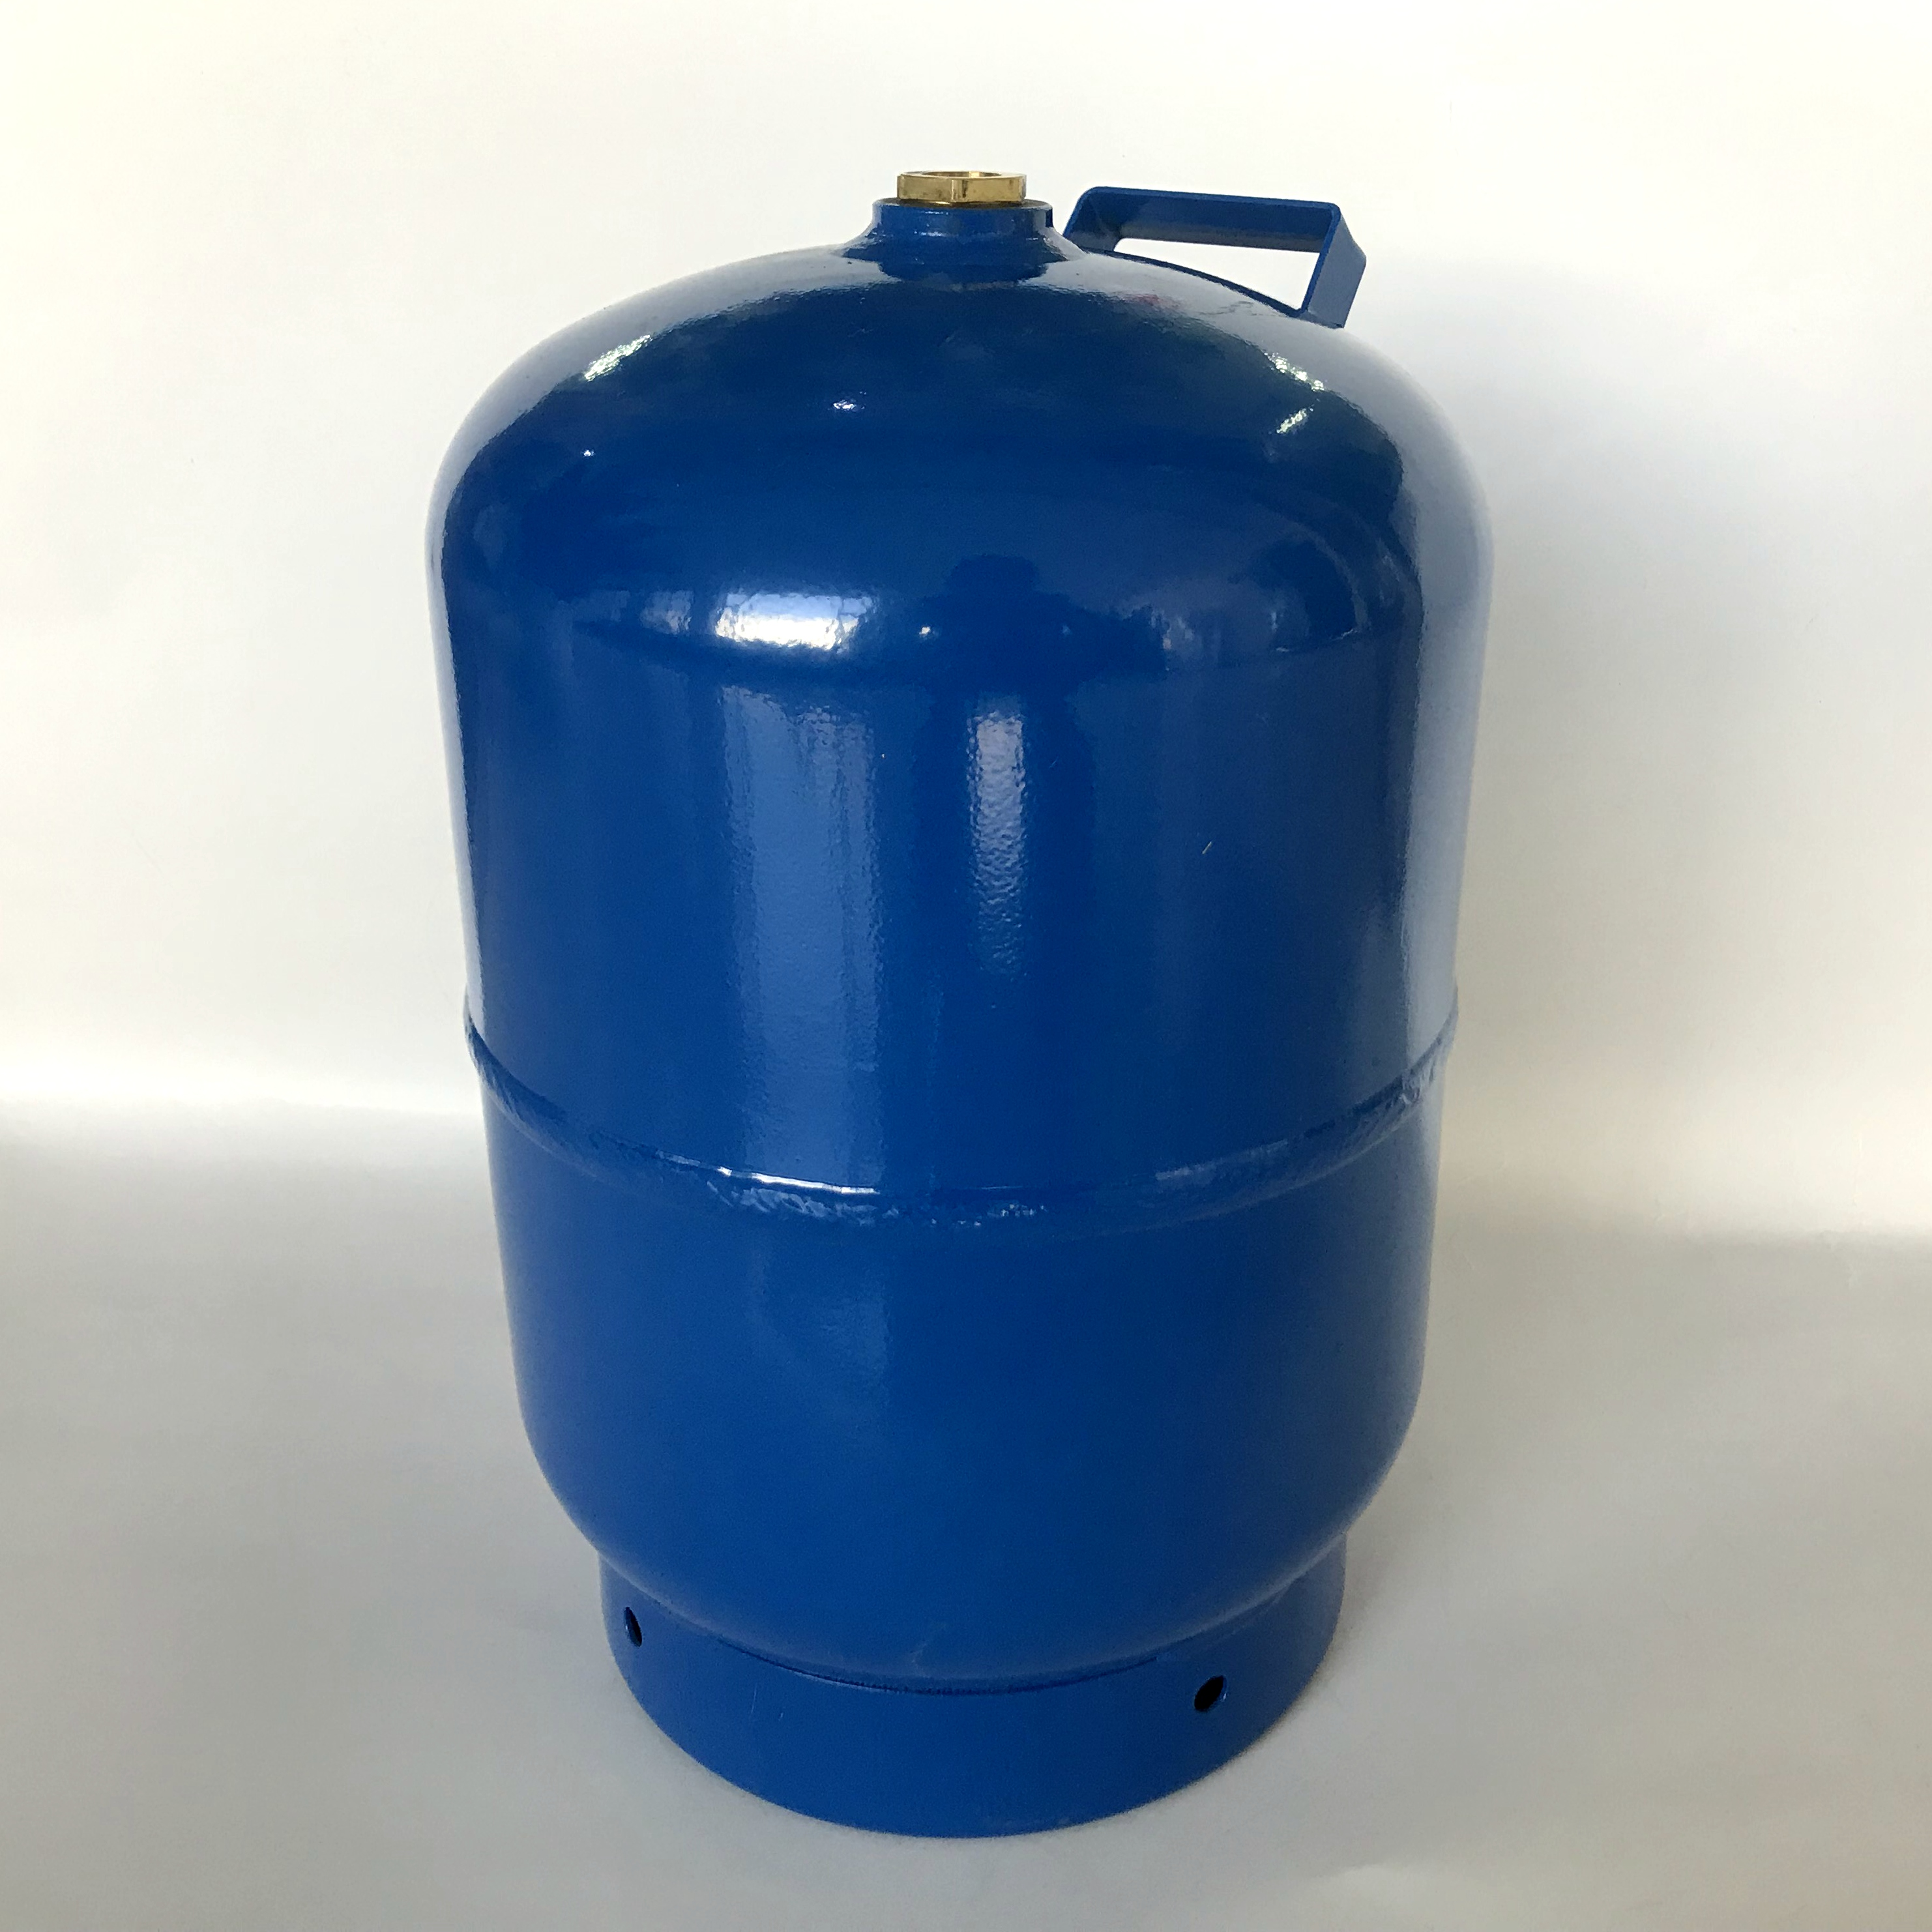 5 kg staal camping lpg gas cilinder